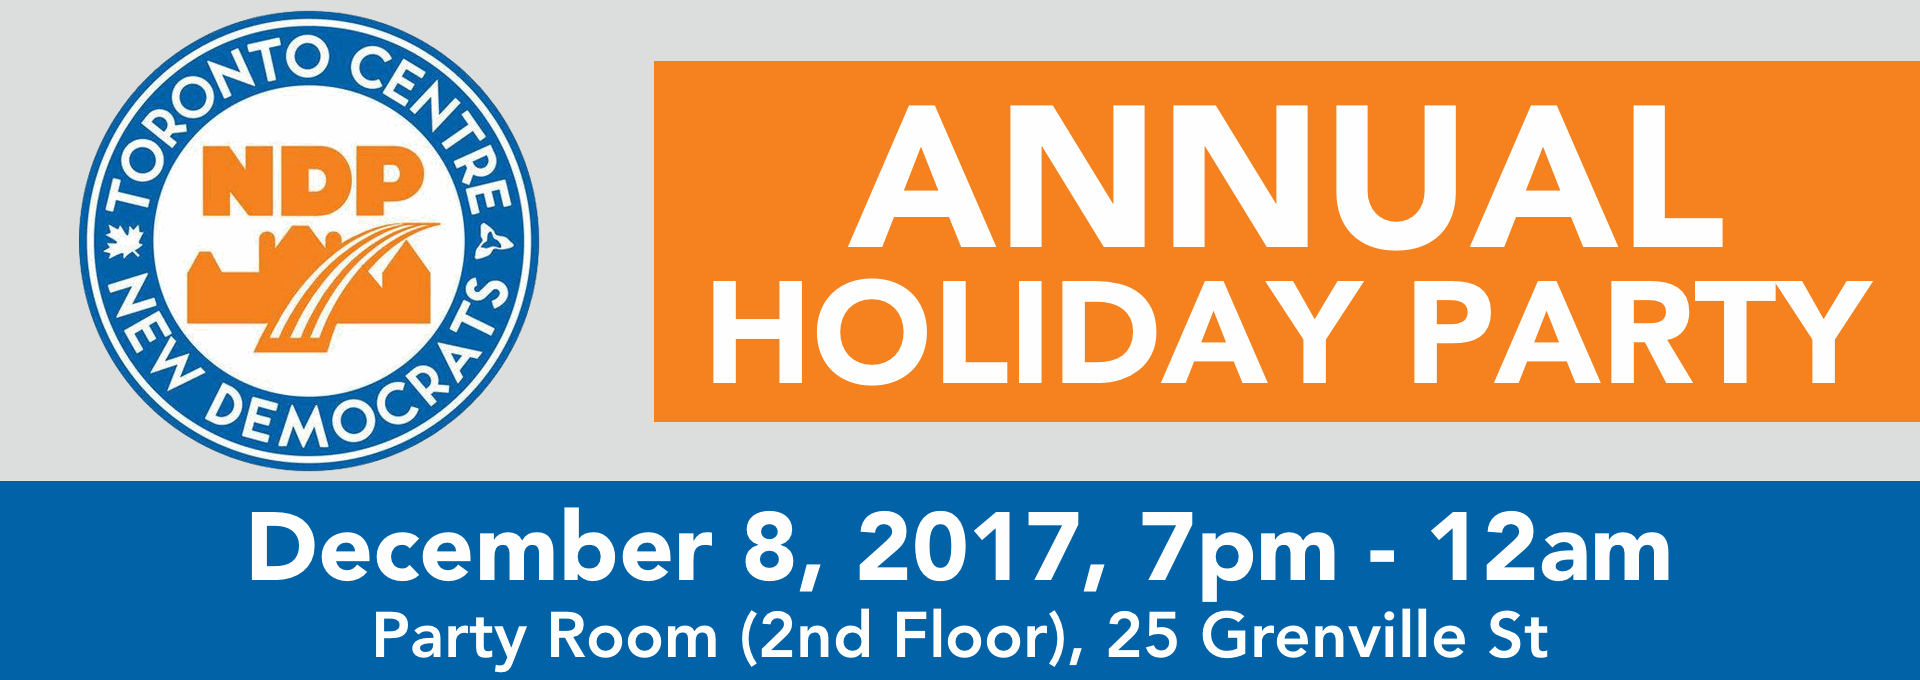 holiday_party2.png